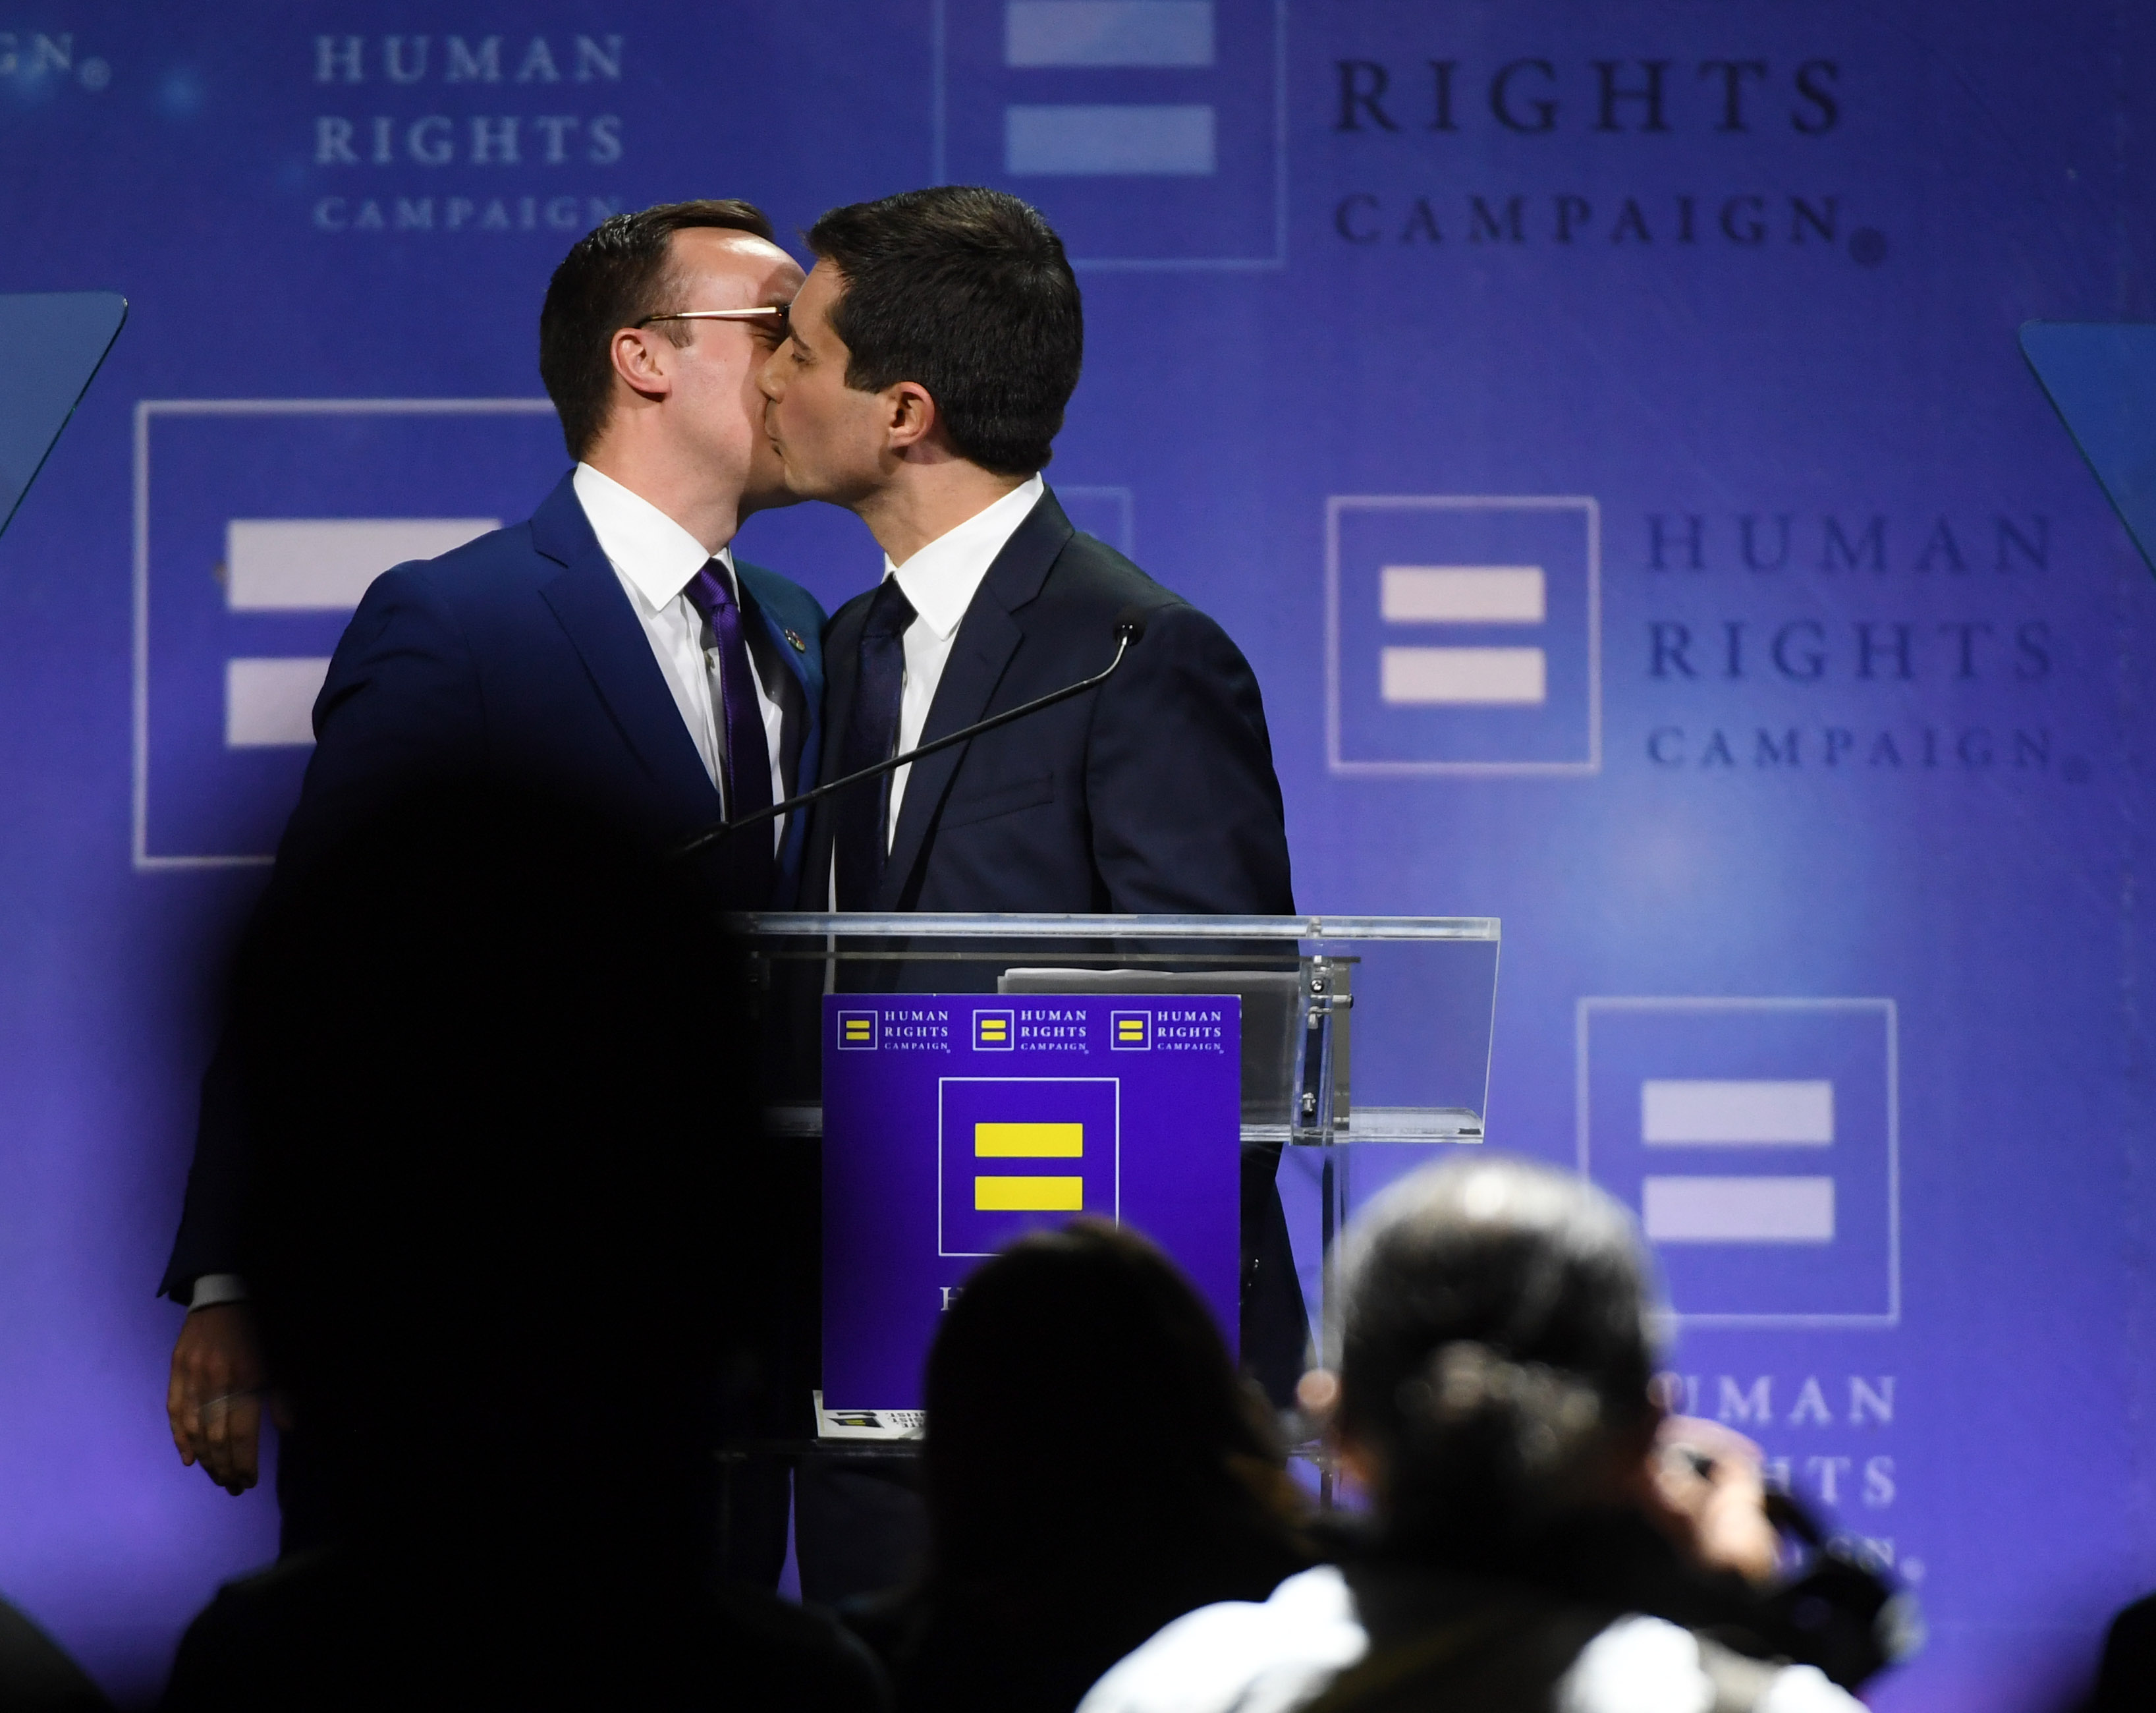 LAS VEGAS, NEVADA - MAY 11: Chasten Glezman Buttigieg (L) kisses his husband, South Bend, Indiana Mayor Pete Buttigieg, after he delivered a keynote address at the Human Rights Campaign's (HRC) 14th annual Las Vegas Gala at Caesars Palace on May 11, 2019 in Las Vegas, Nevada. Buttigieg is the first openly gay candidate to run for the Democratic presidential nomination. The HRC is the largest LGBTQ advocacy group in the United States. (Photo by Ethan Miller/Getty Images)